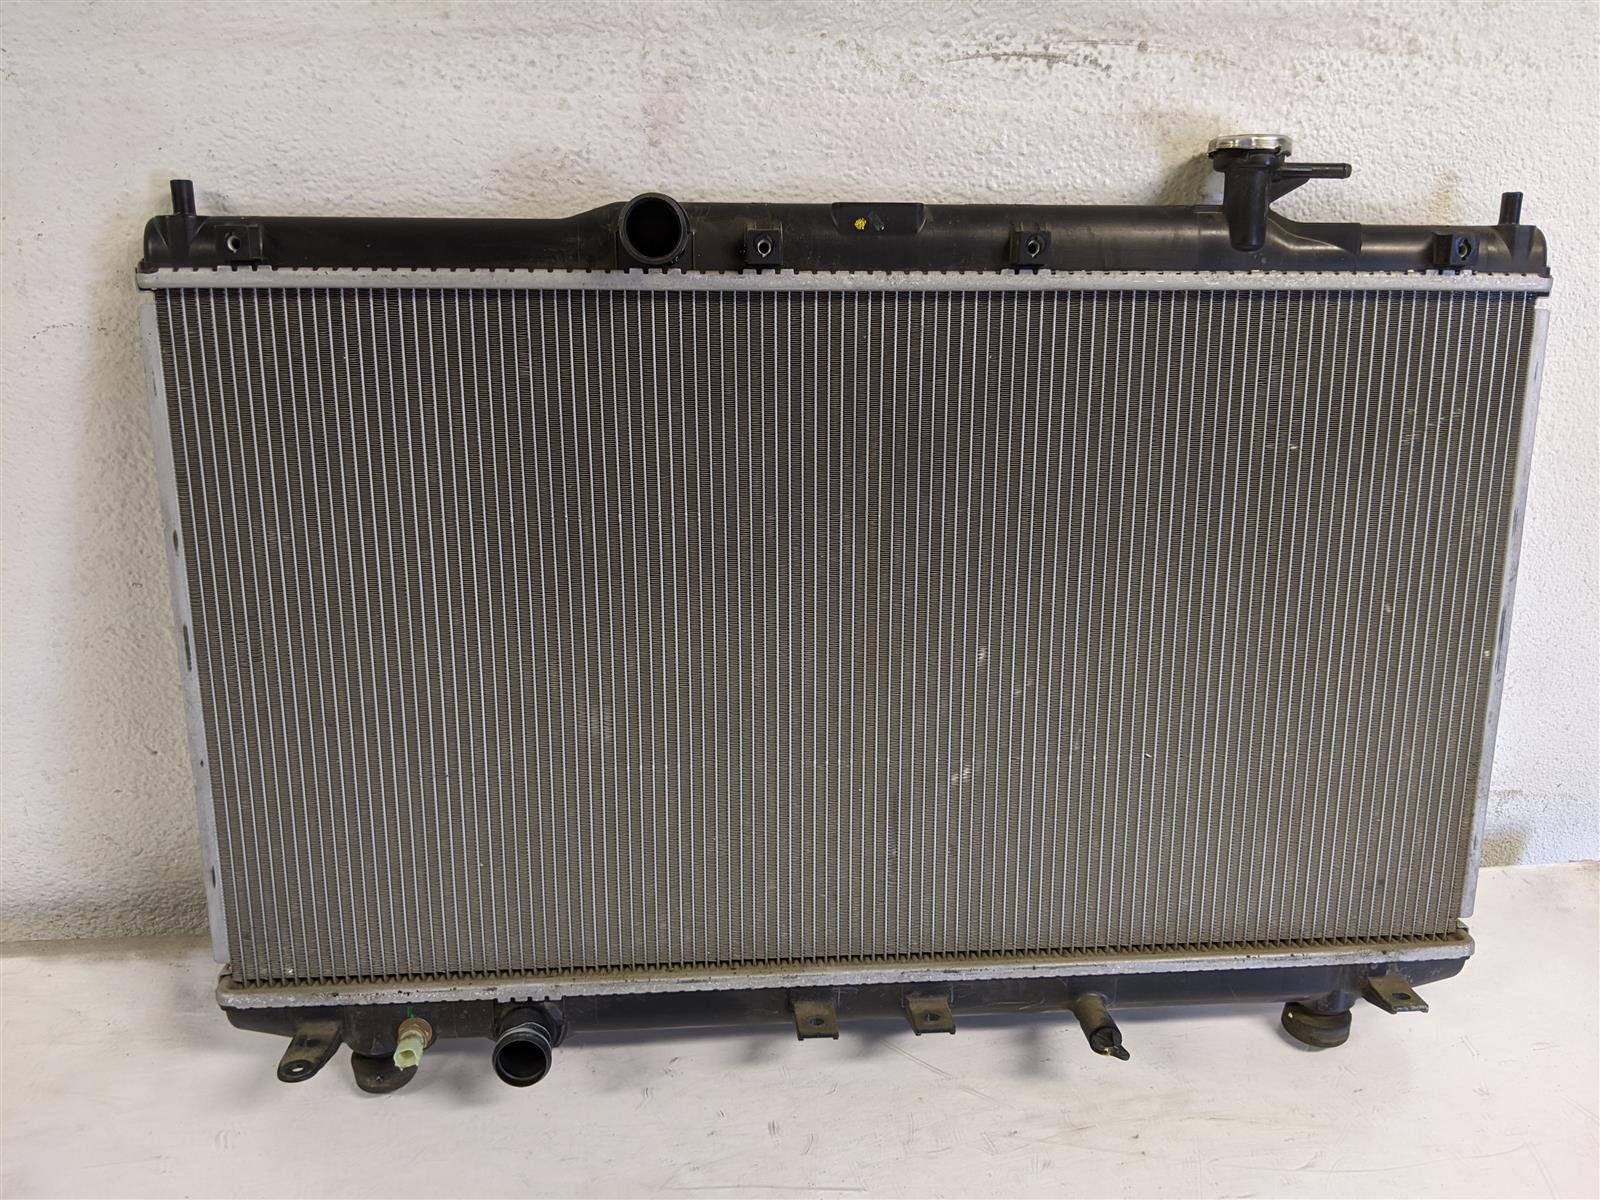 2017 Acura TLX 2.4l Radiator Replacement